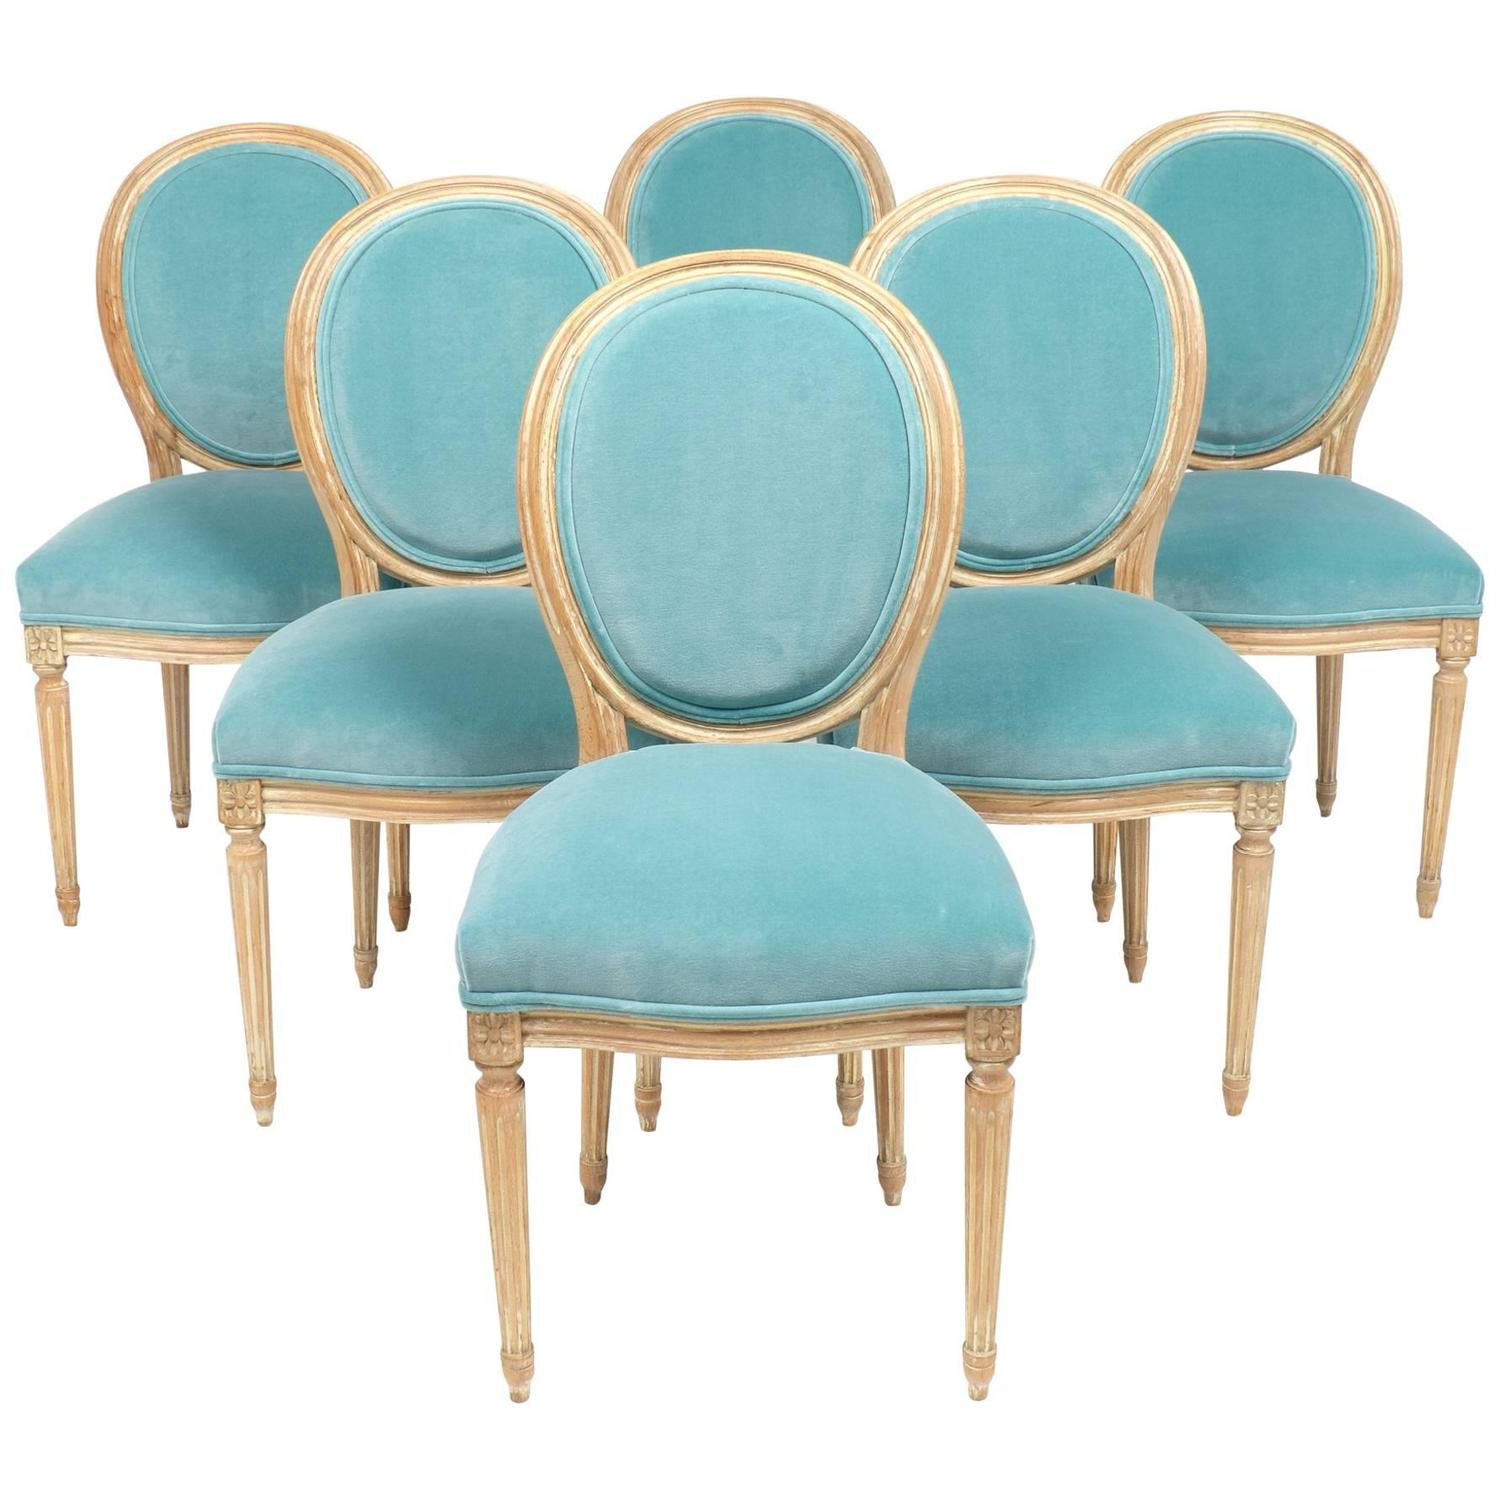 Antique Louis Xvi Chairs : Antique Furniture